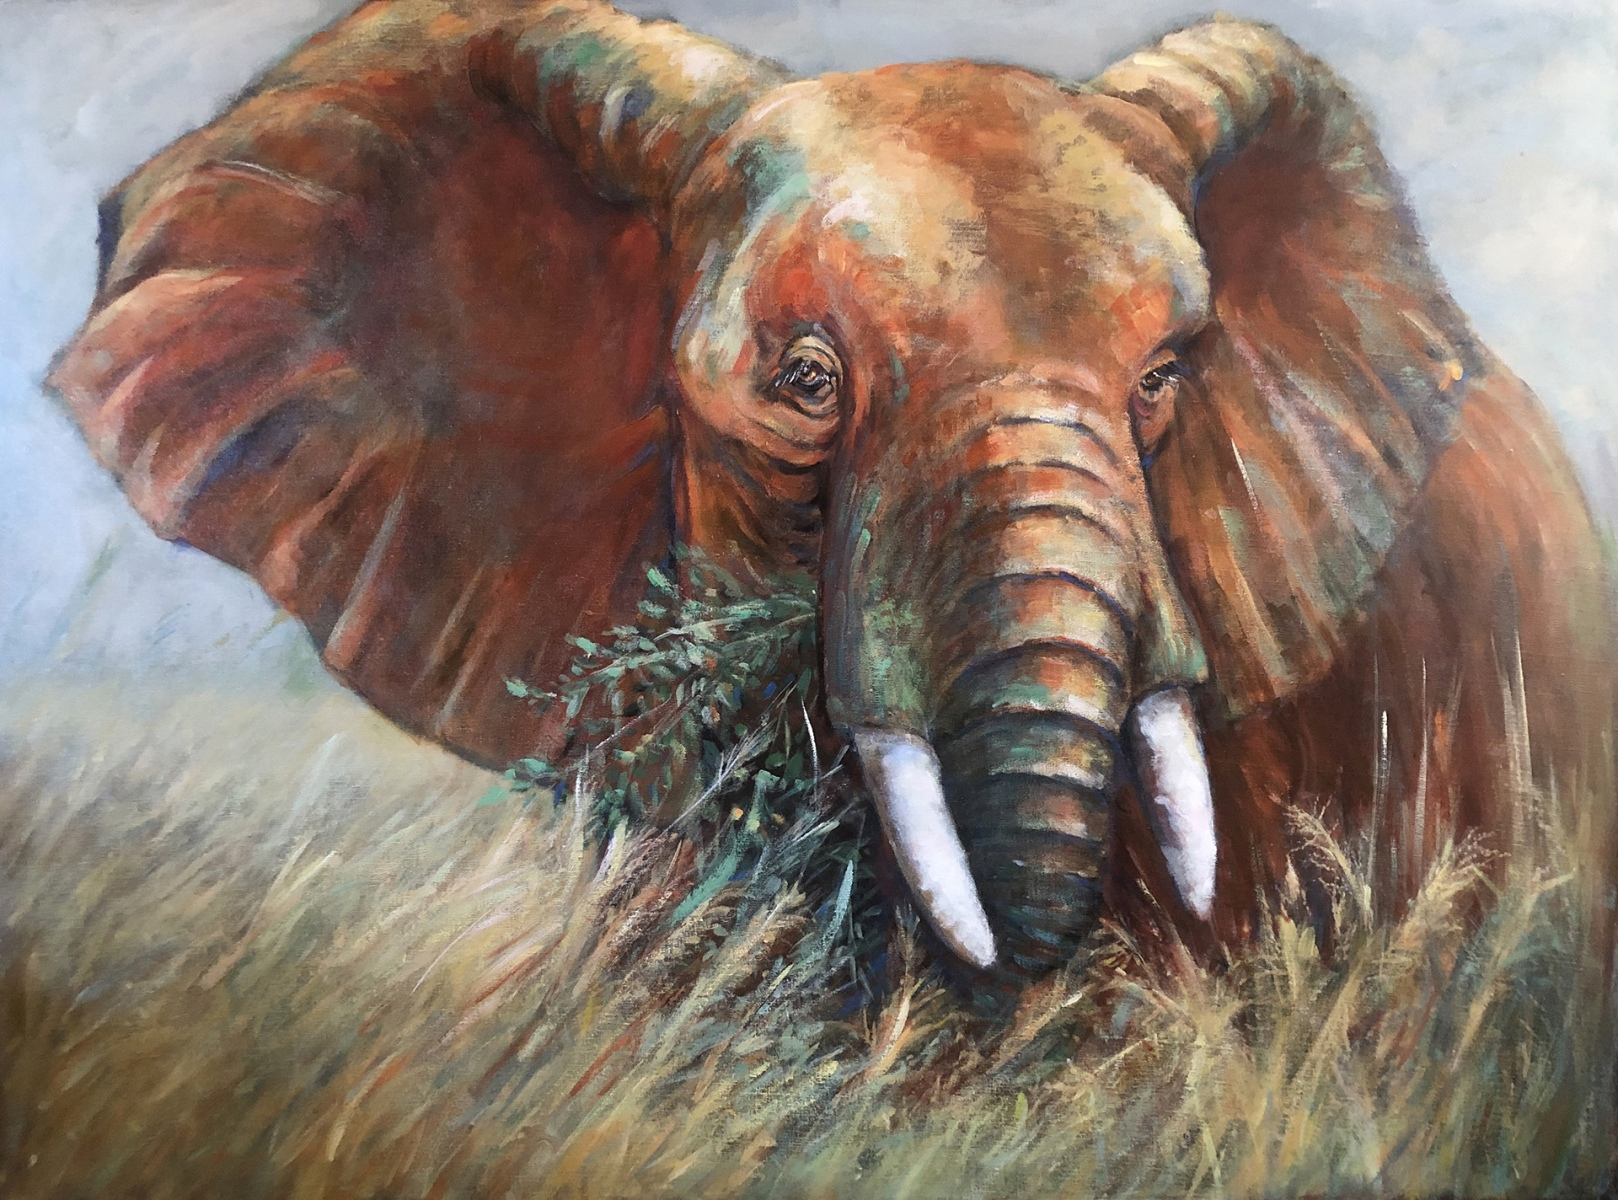 1989 Elephant -End of Nature Series II- 48x36 acrylic on canvas